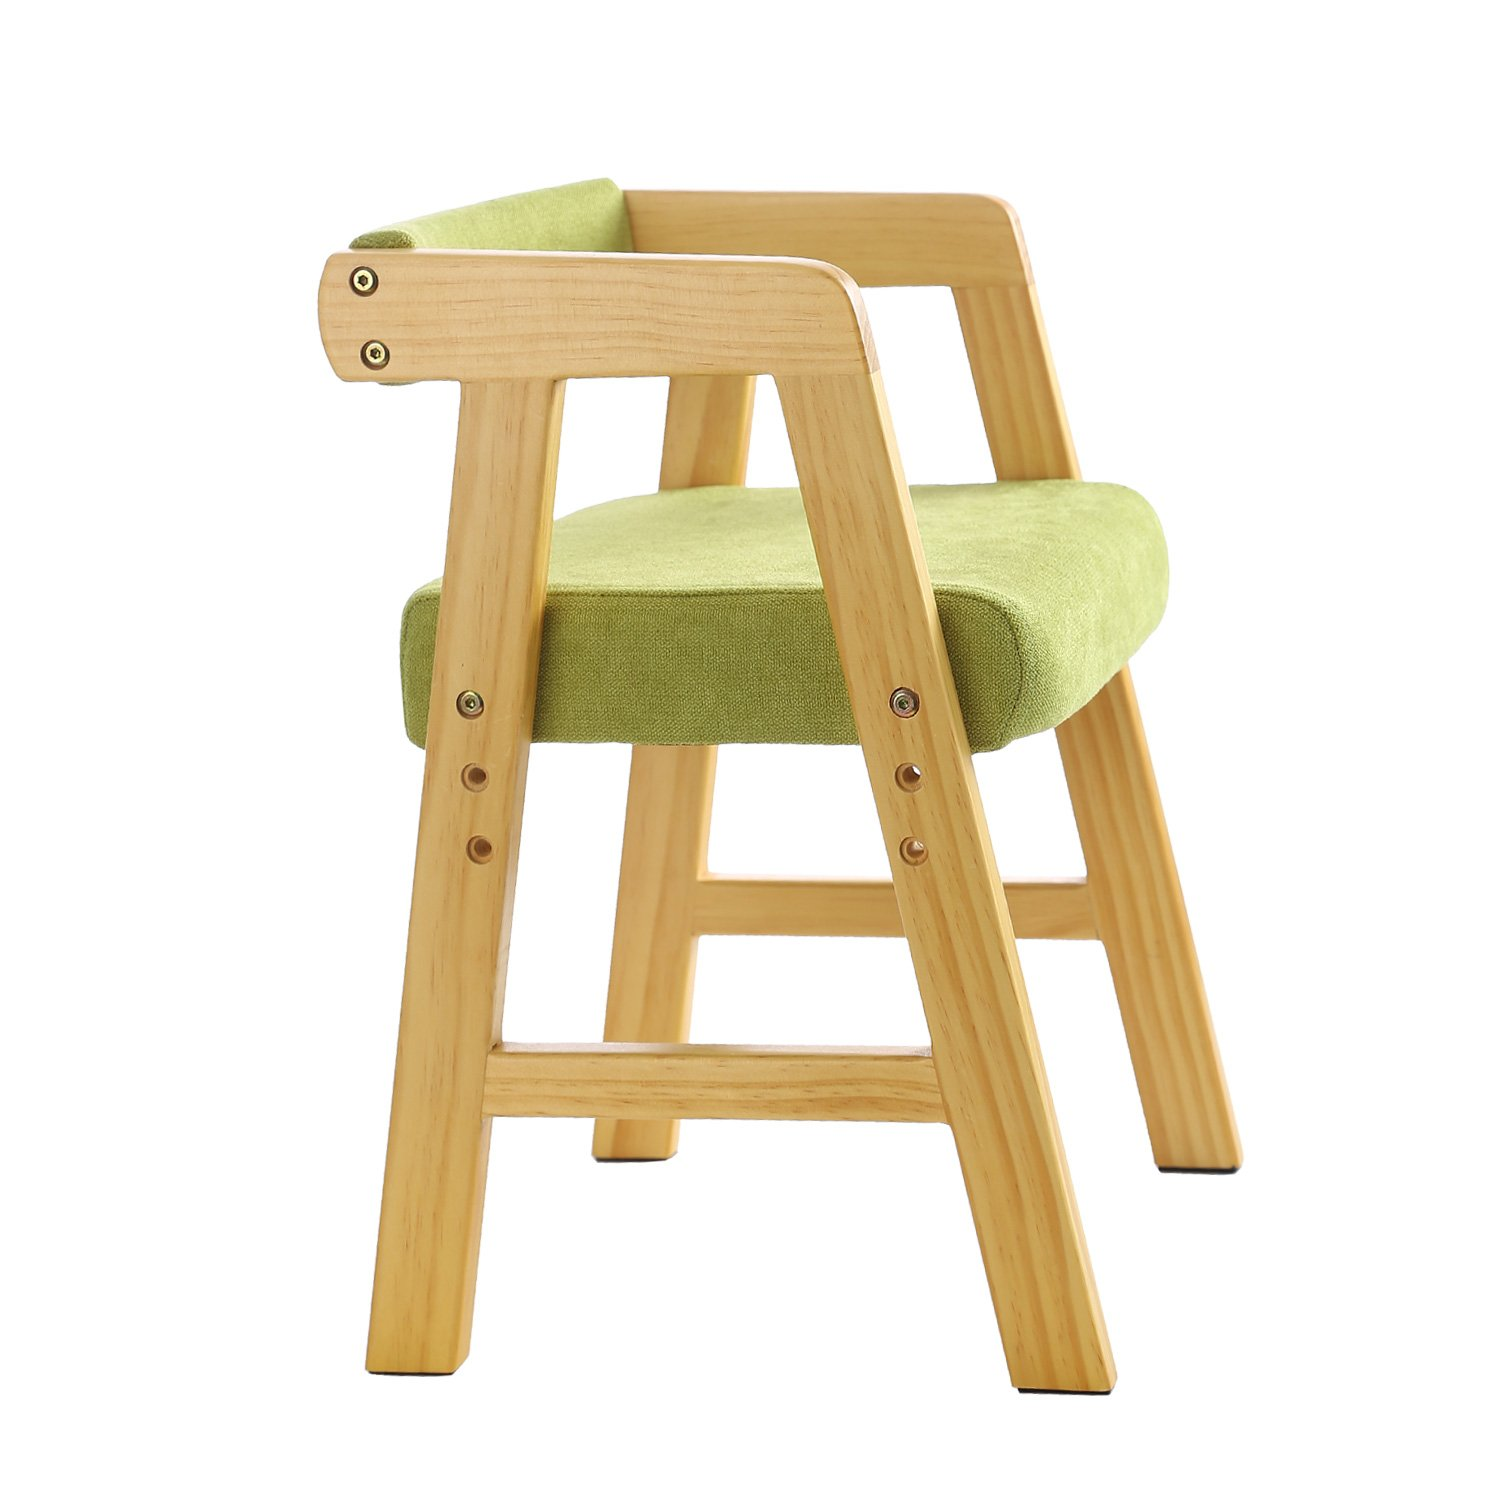 YouHi Kids Chair Wooden Chair for Toddlers Height-Adjustable Chair Comfortable Sponge Seat for Daycare Preschool Children's Room(Green) by YouHi